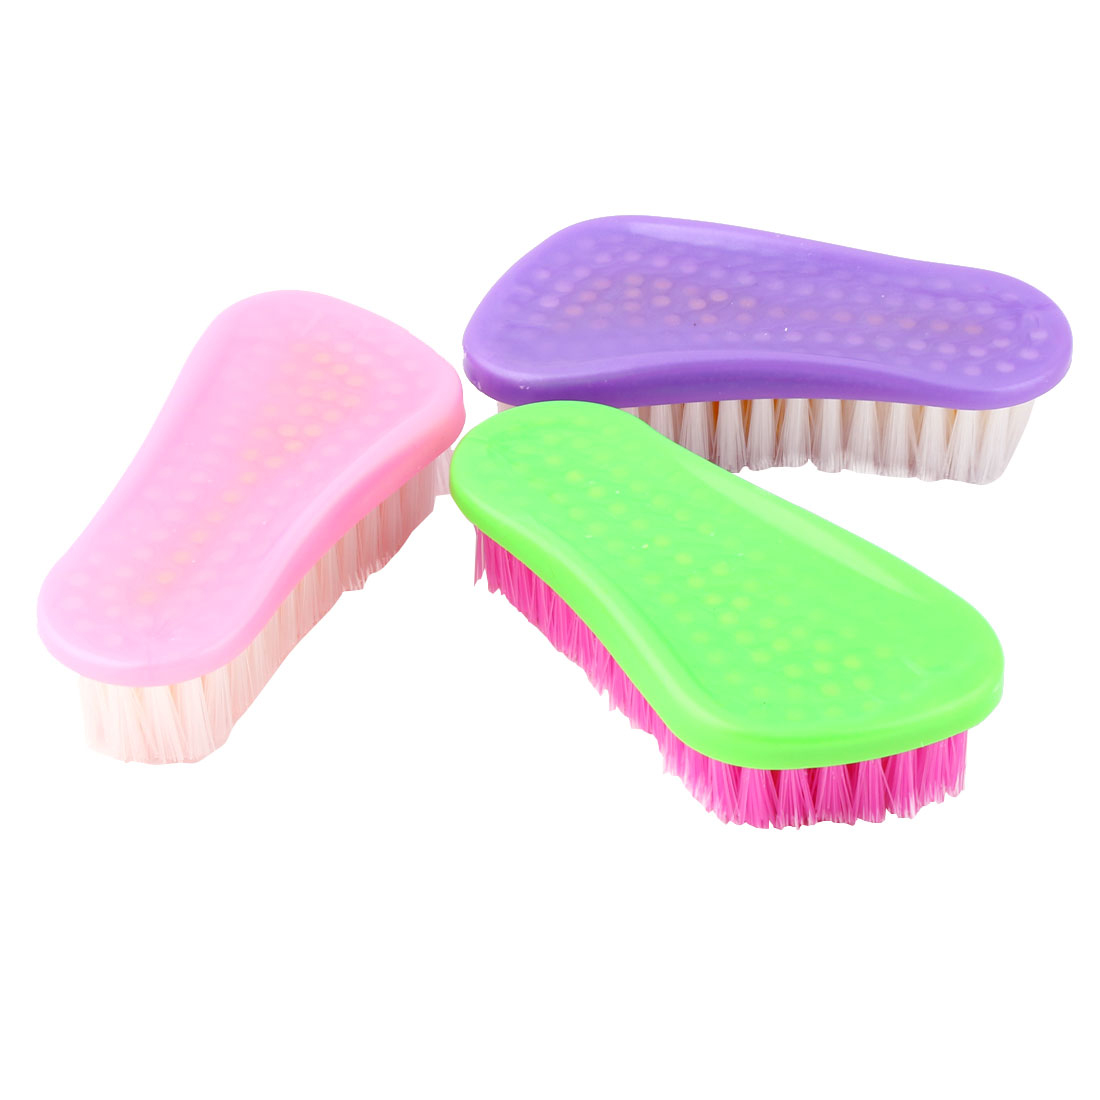 Kitchen Floor Plastic Laundry Clothes Shoes Washing Scrubbing Brush Cleaner 3pcs